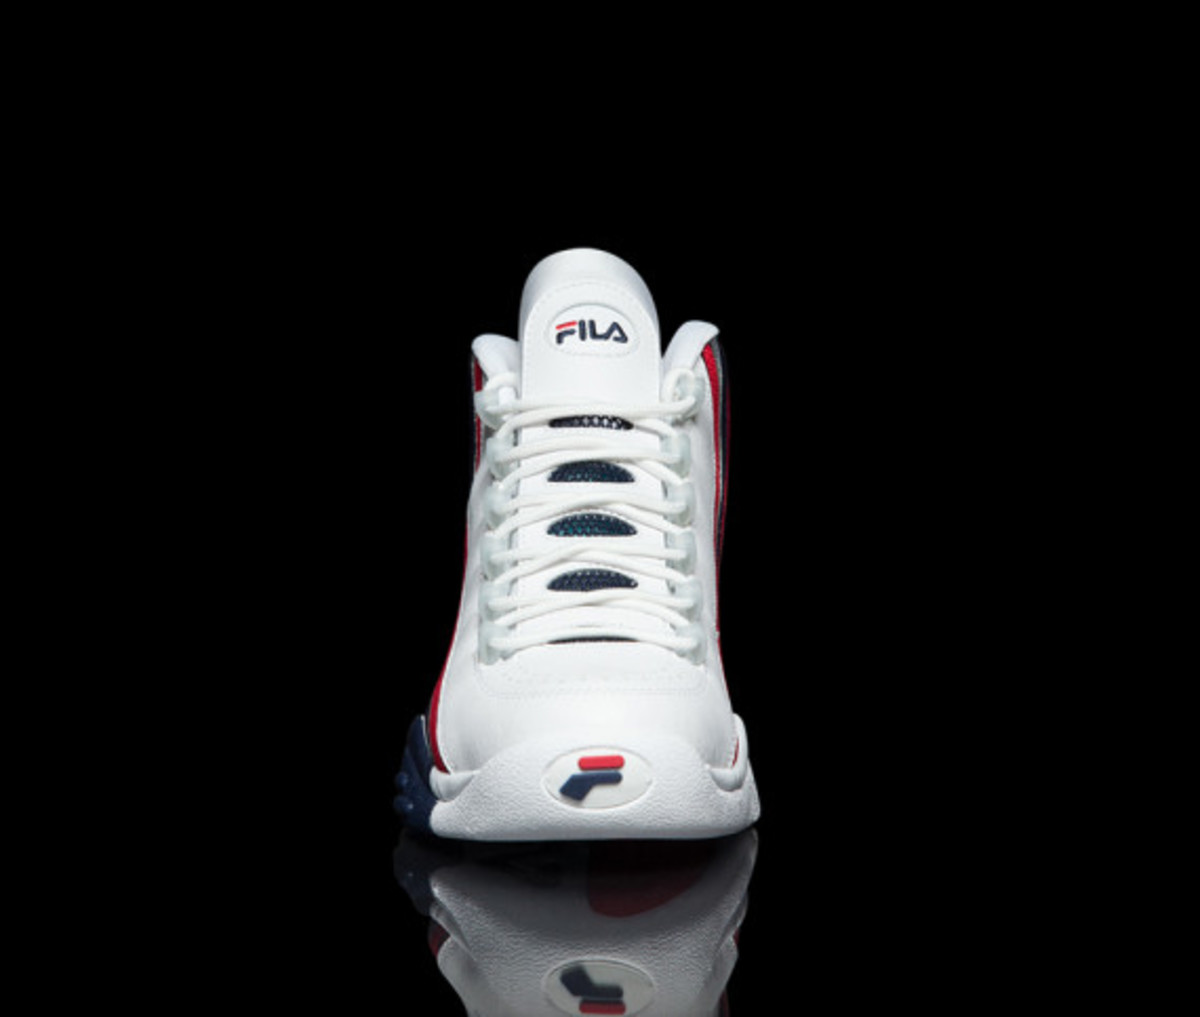 fila-the-stack-2-release-info-03